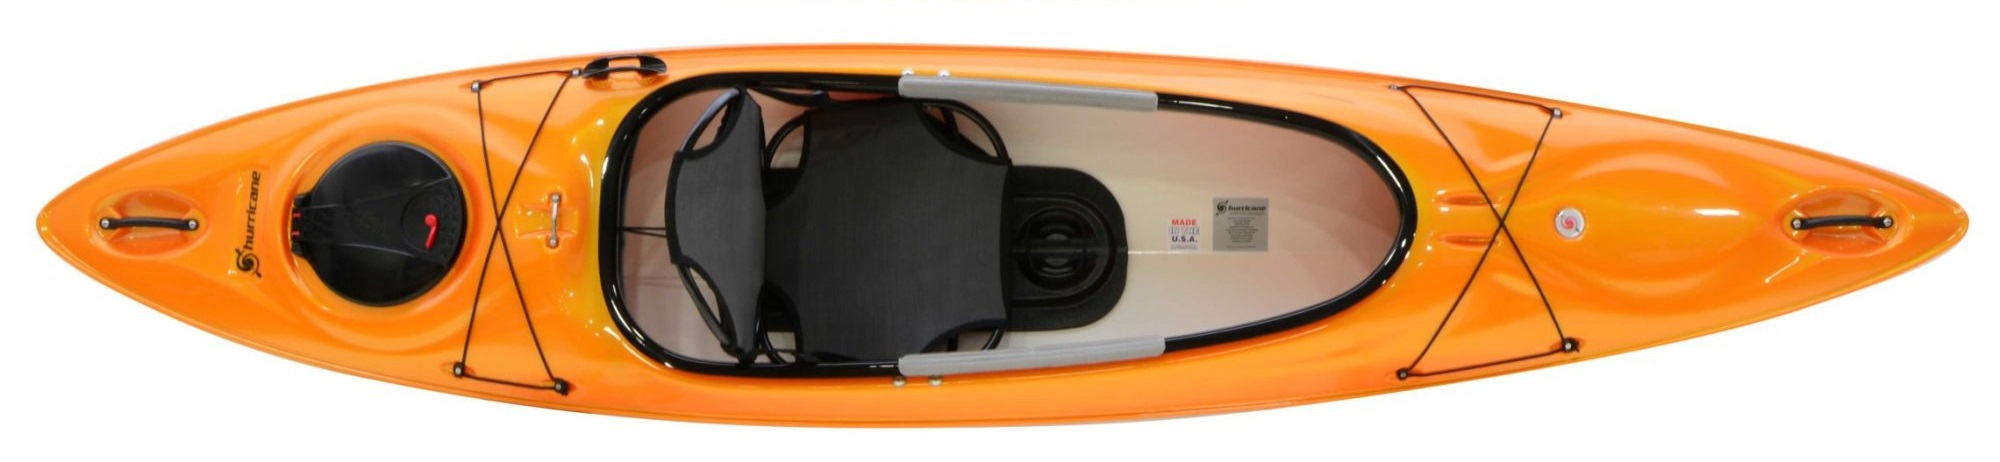 Hurricane Santee 110 Sport Kayak w/ Ultimate Frame Seat and Console